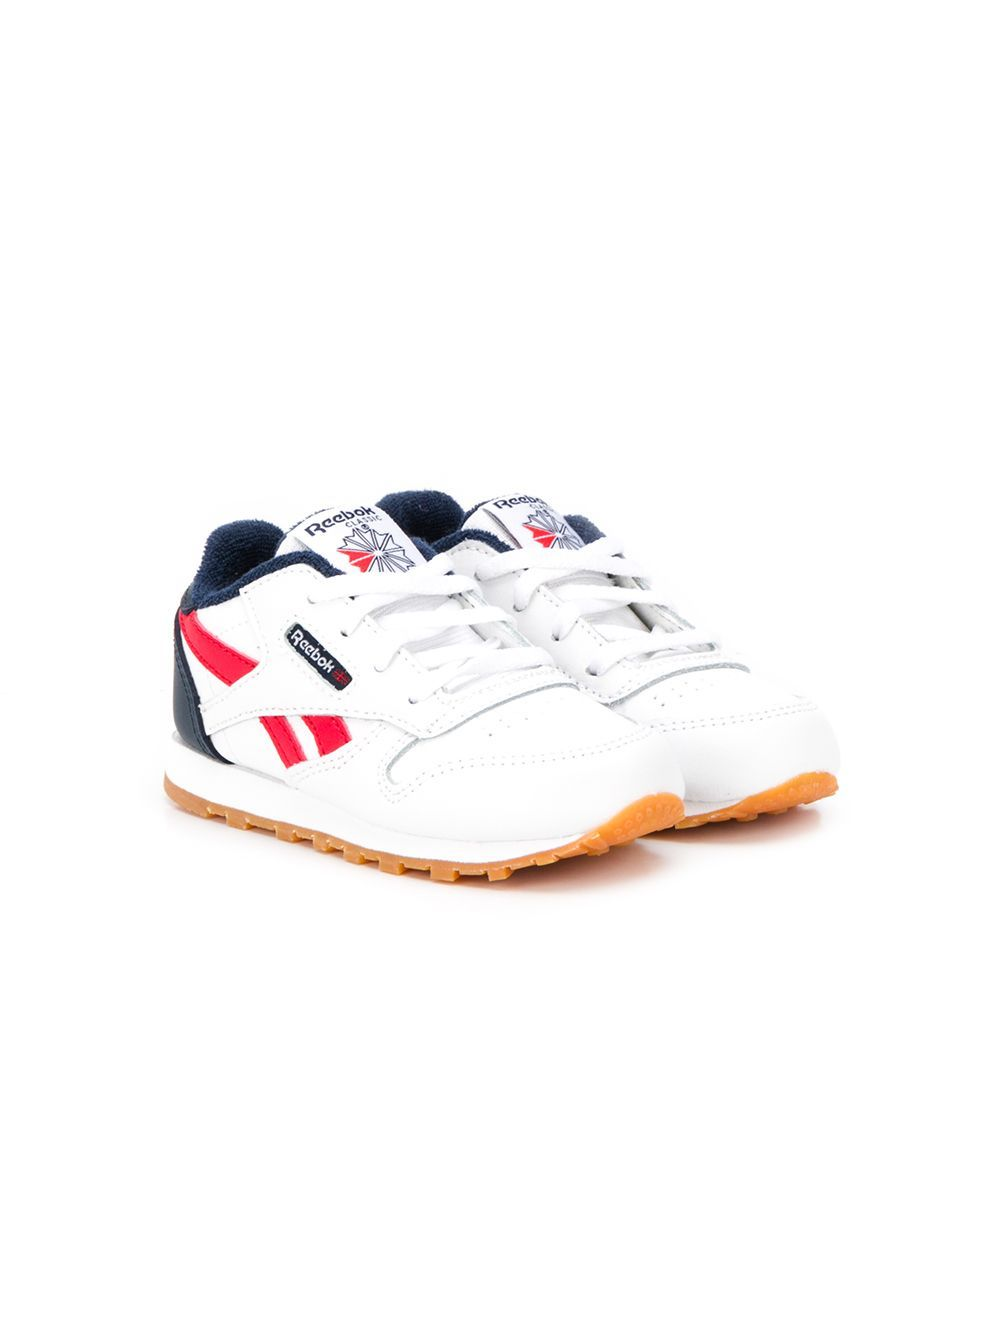 REEBOK CLASSIC LACE-UP SNEAKERS